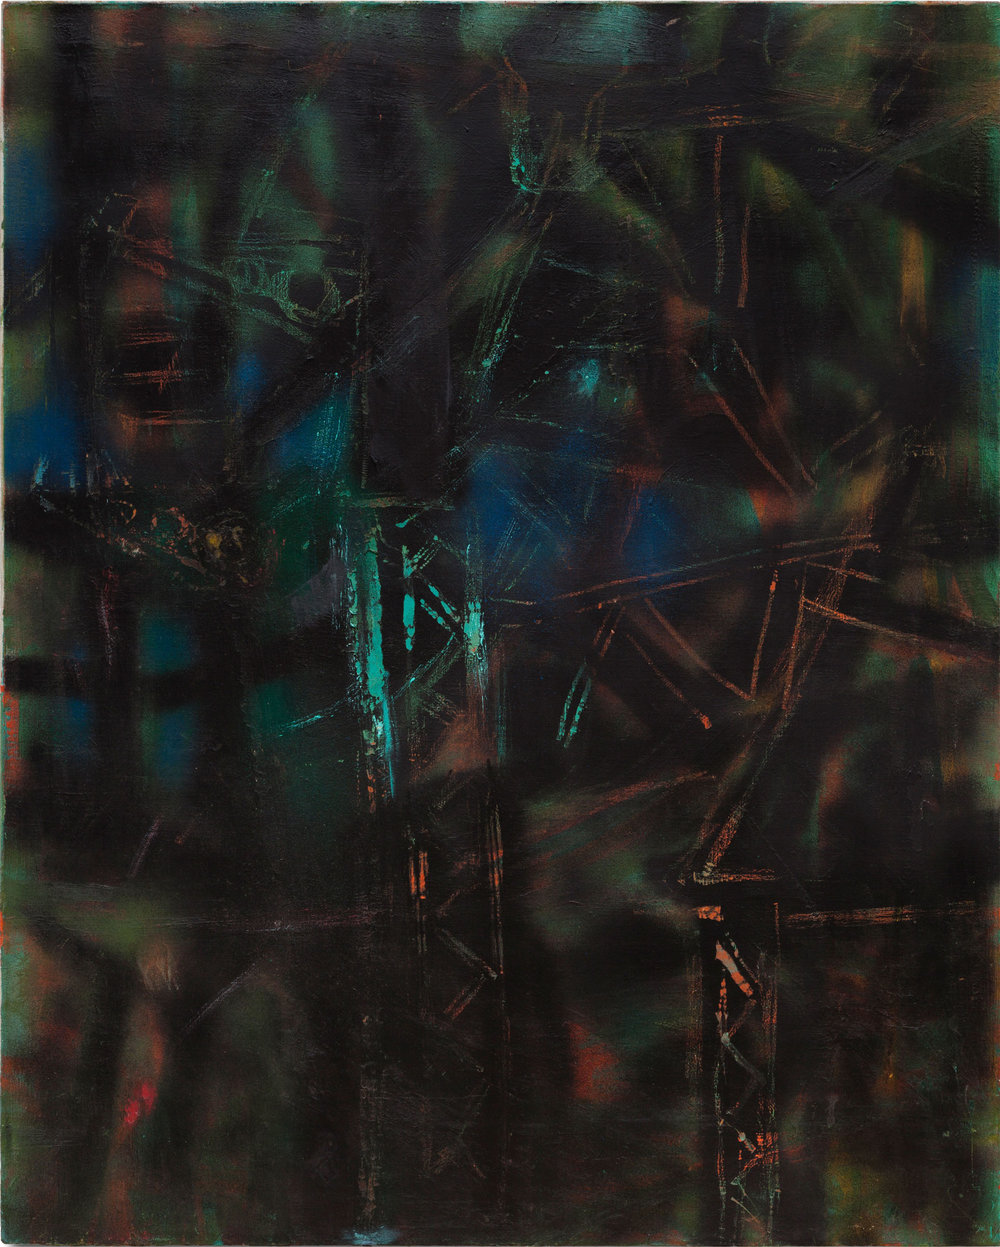 Hedda Sterne, Untitled, c. 1955, Oil on canvas, 42 in. x 34 in.